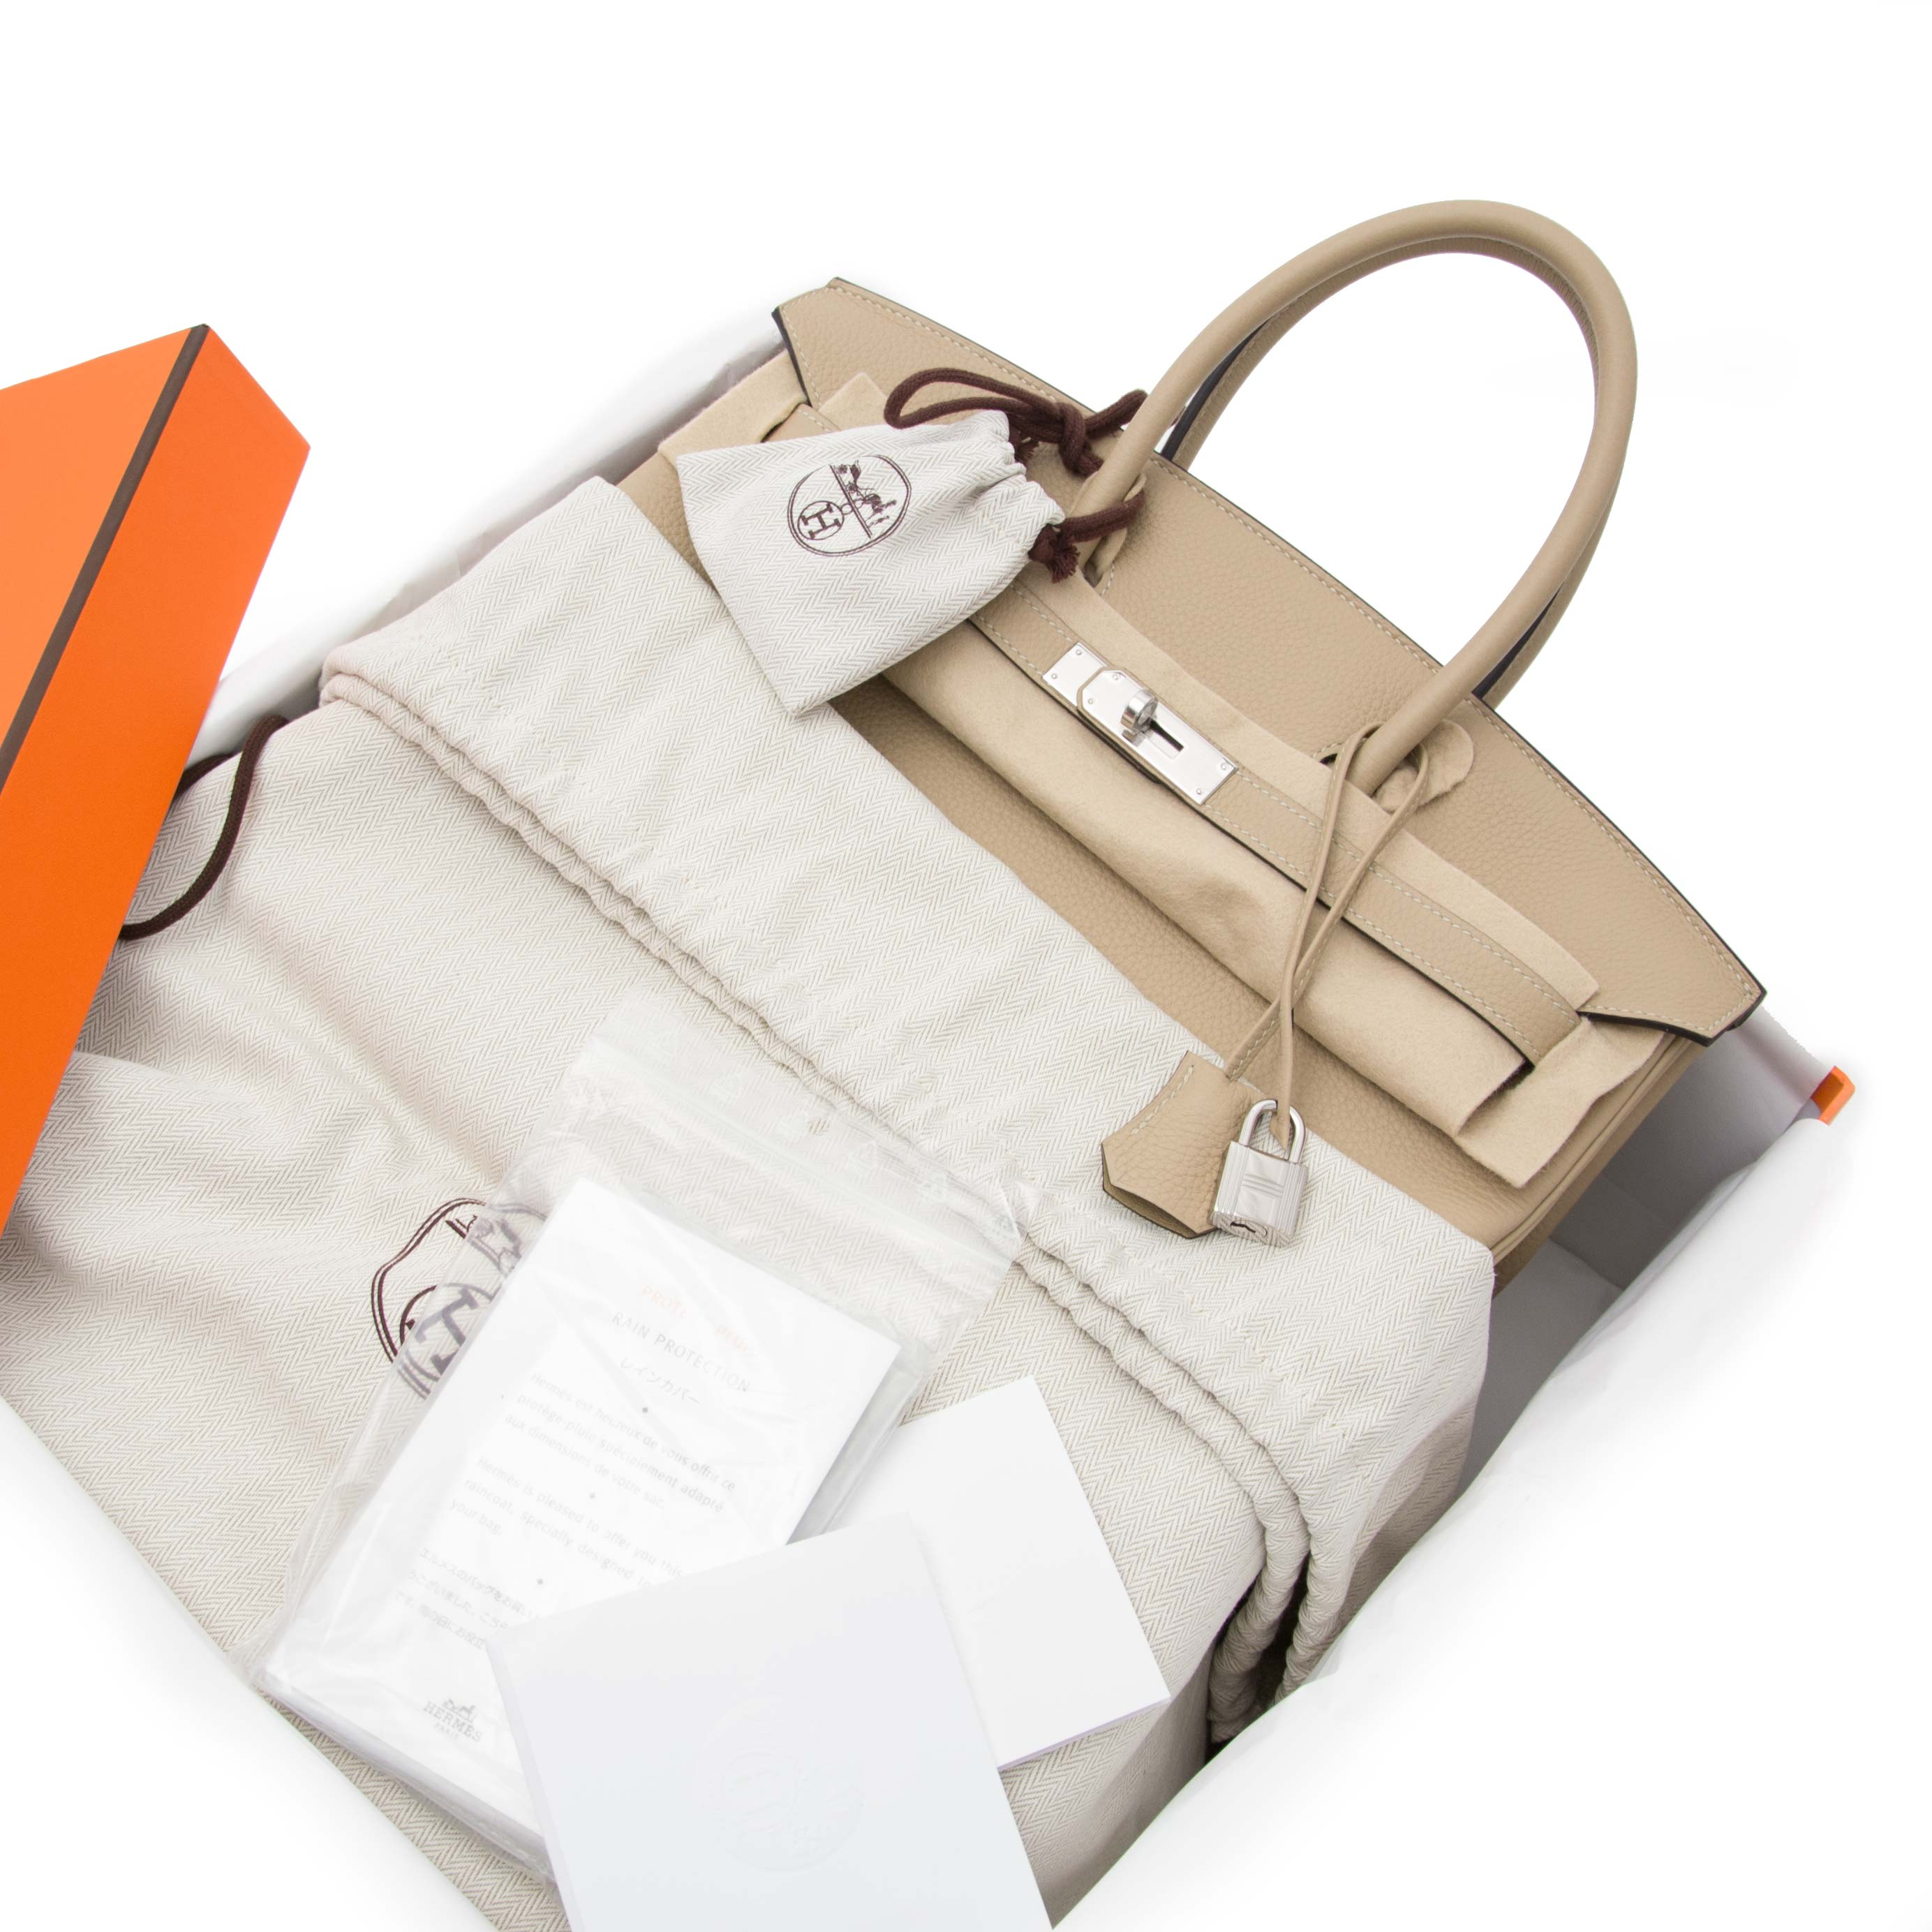 e0ae7a2eeef5 ... buy safe and secure online at labellov.com 100% authentic Hermes birkin  35 togo